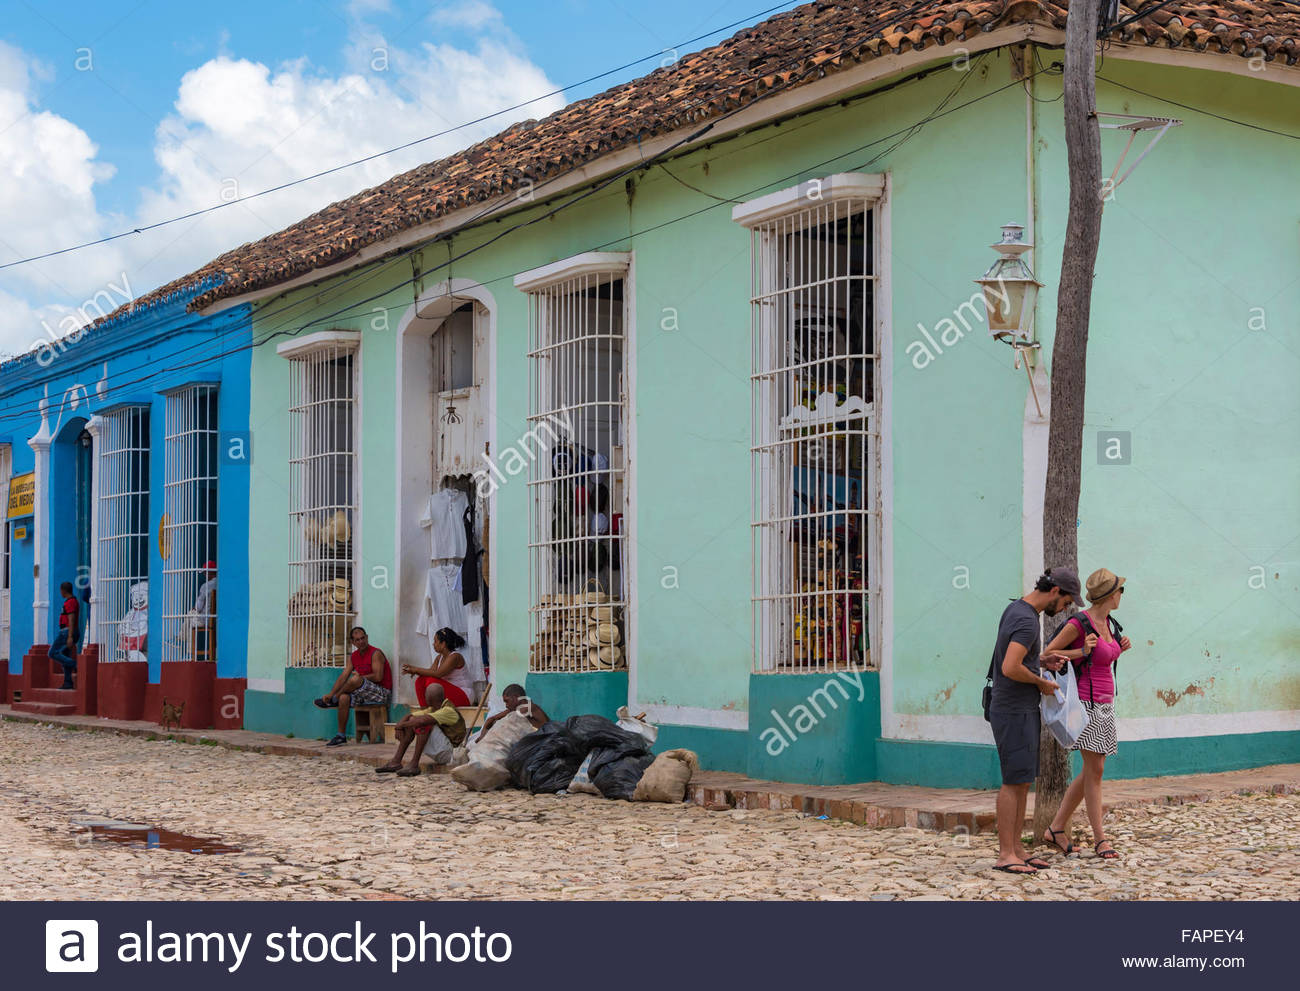 General view of the Hispanic colonial architecture and everyday scenes in Trinidad,Cuba. Trinidad is a Unesco World - Stock Image